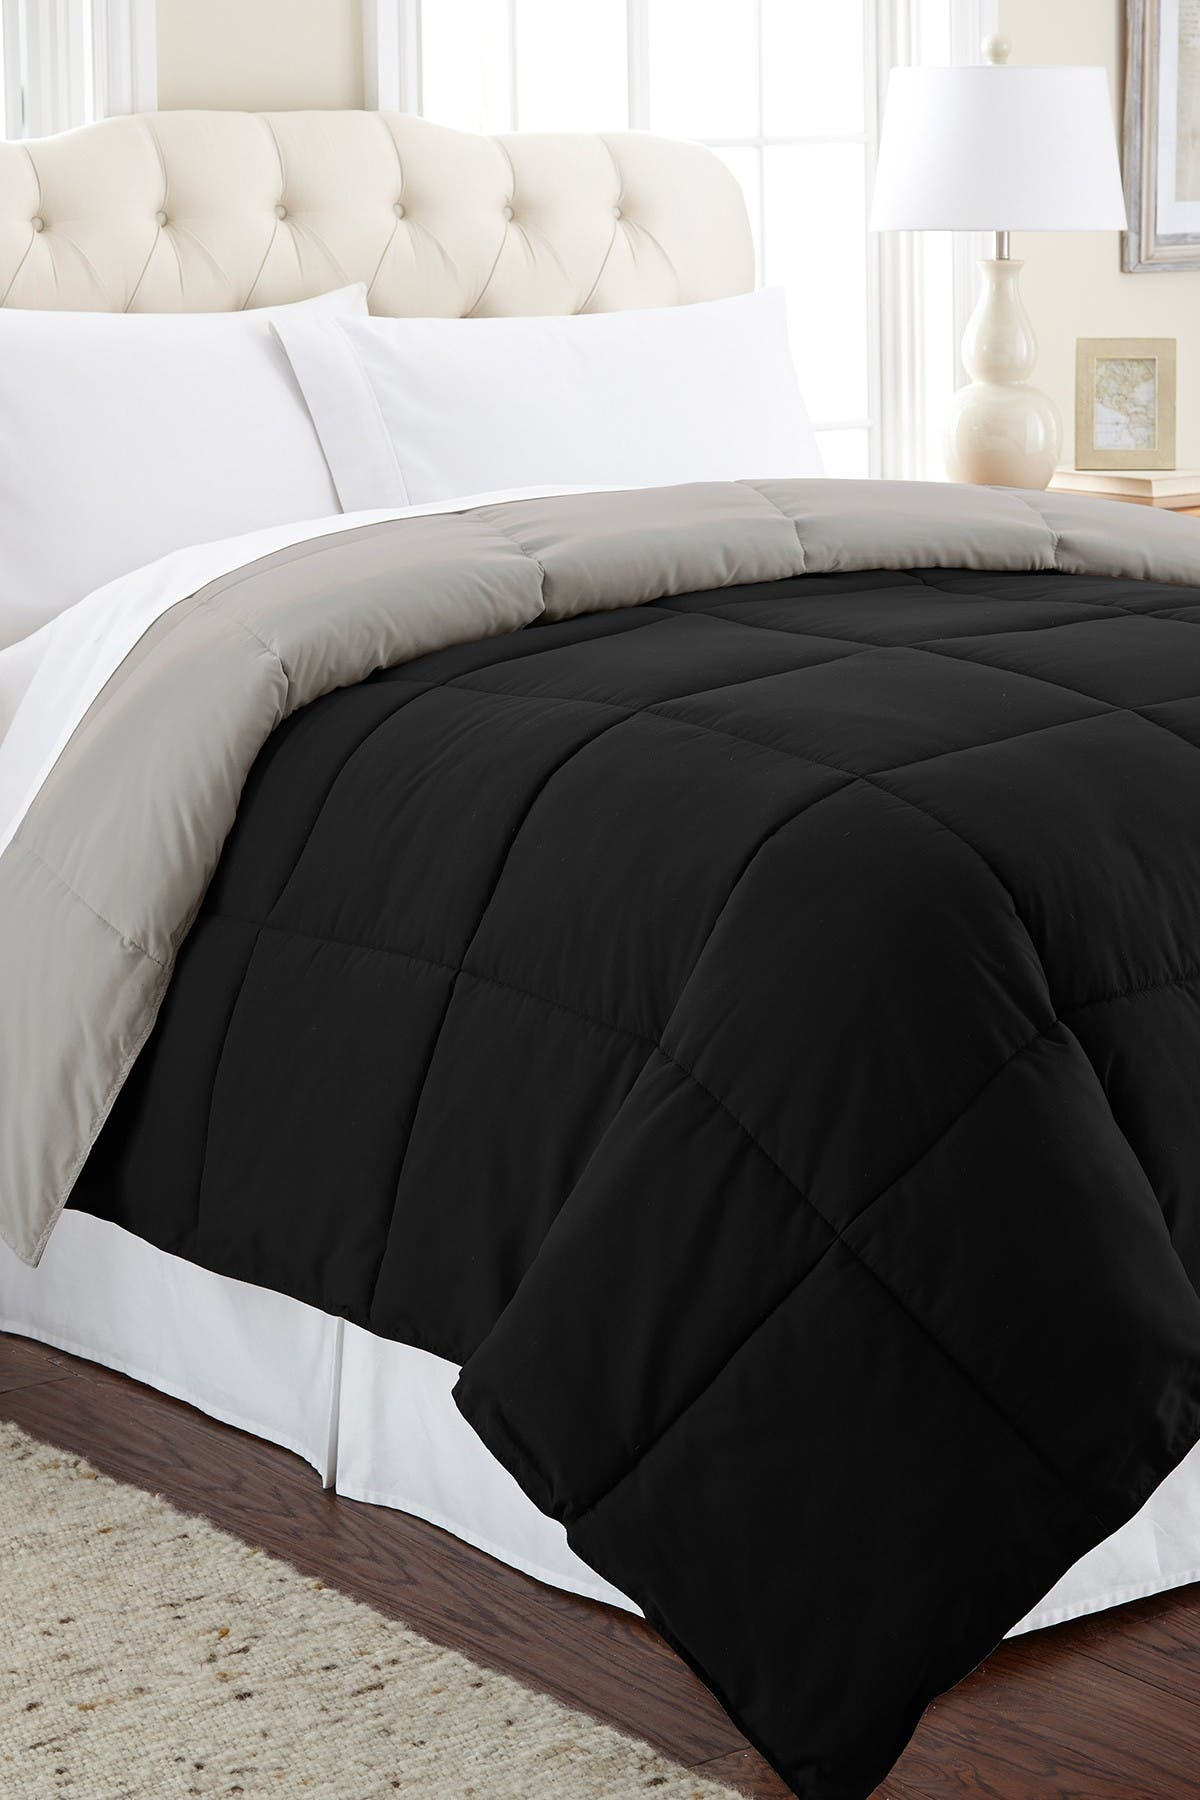 Image of Modern Threads Down Alternative Reversible Queen Comforter - Anthracite/Silver